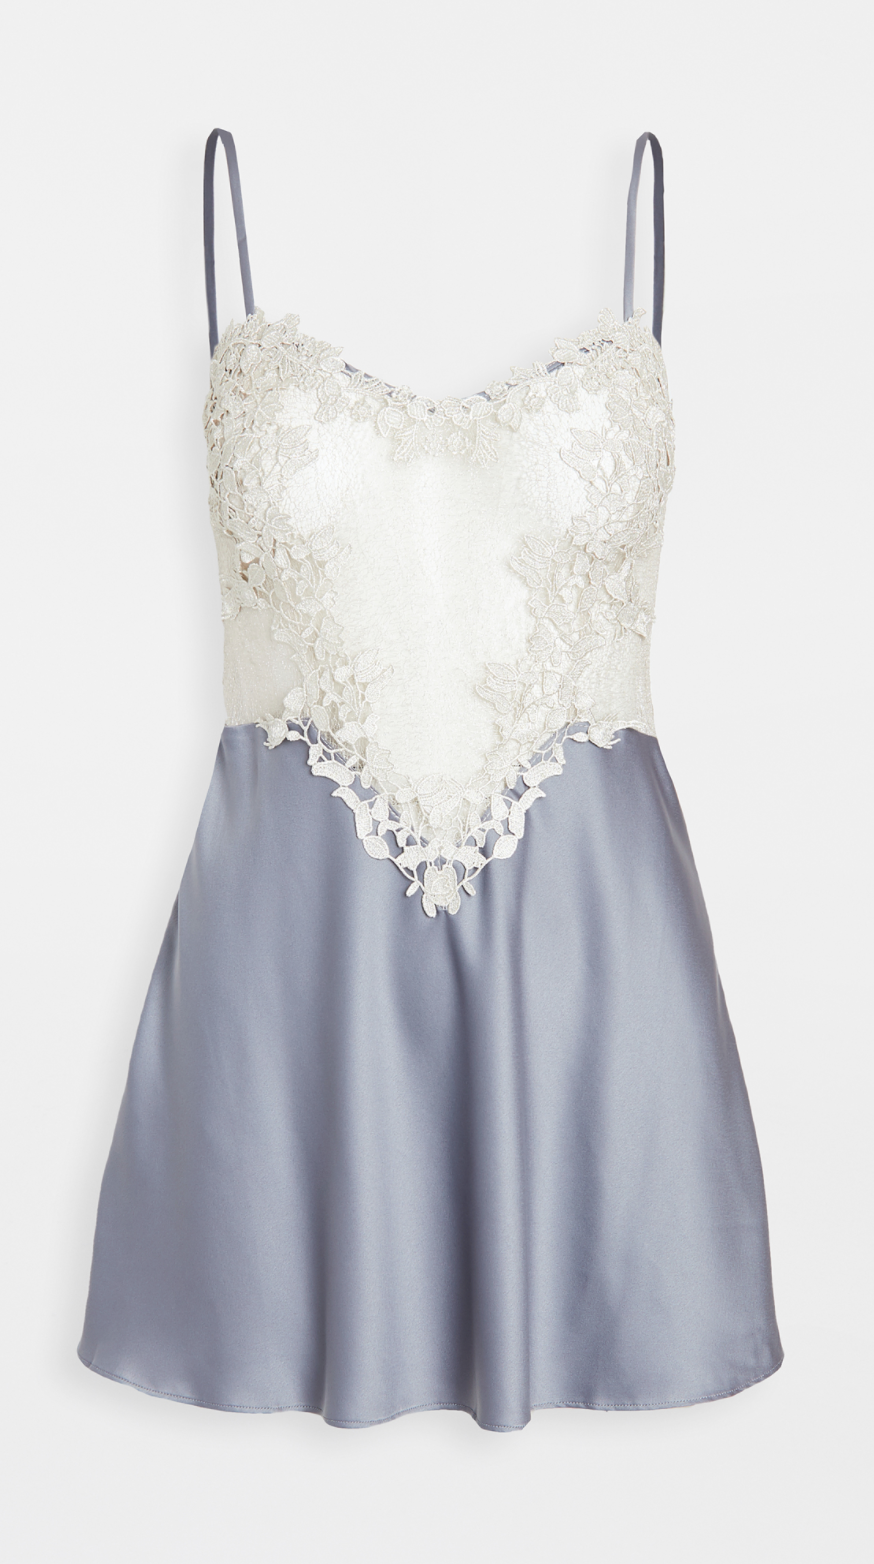 Flora Nikrooz 'Showstopper' Charmeuse Chemise with Lace (Photo via Shopbop)